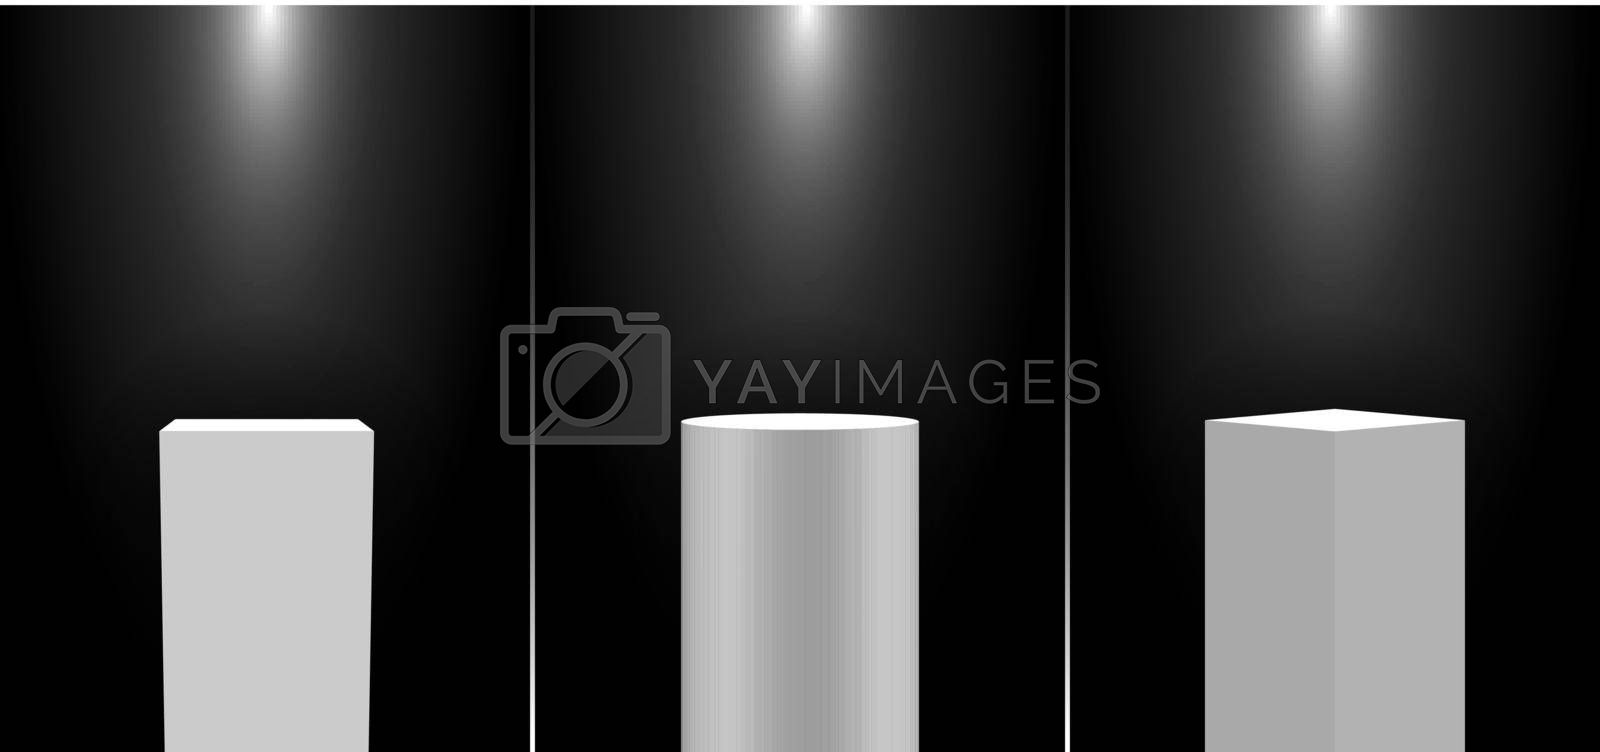 Royalty free image of Set of 3D realistic white pedestal podium exhibition display gallery blank product stands on black background with lighting by phochi